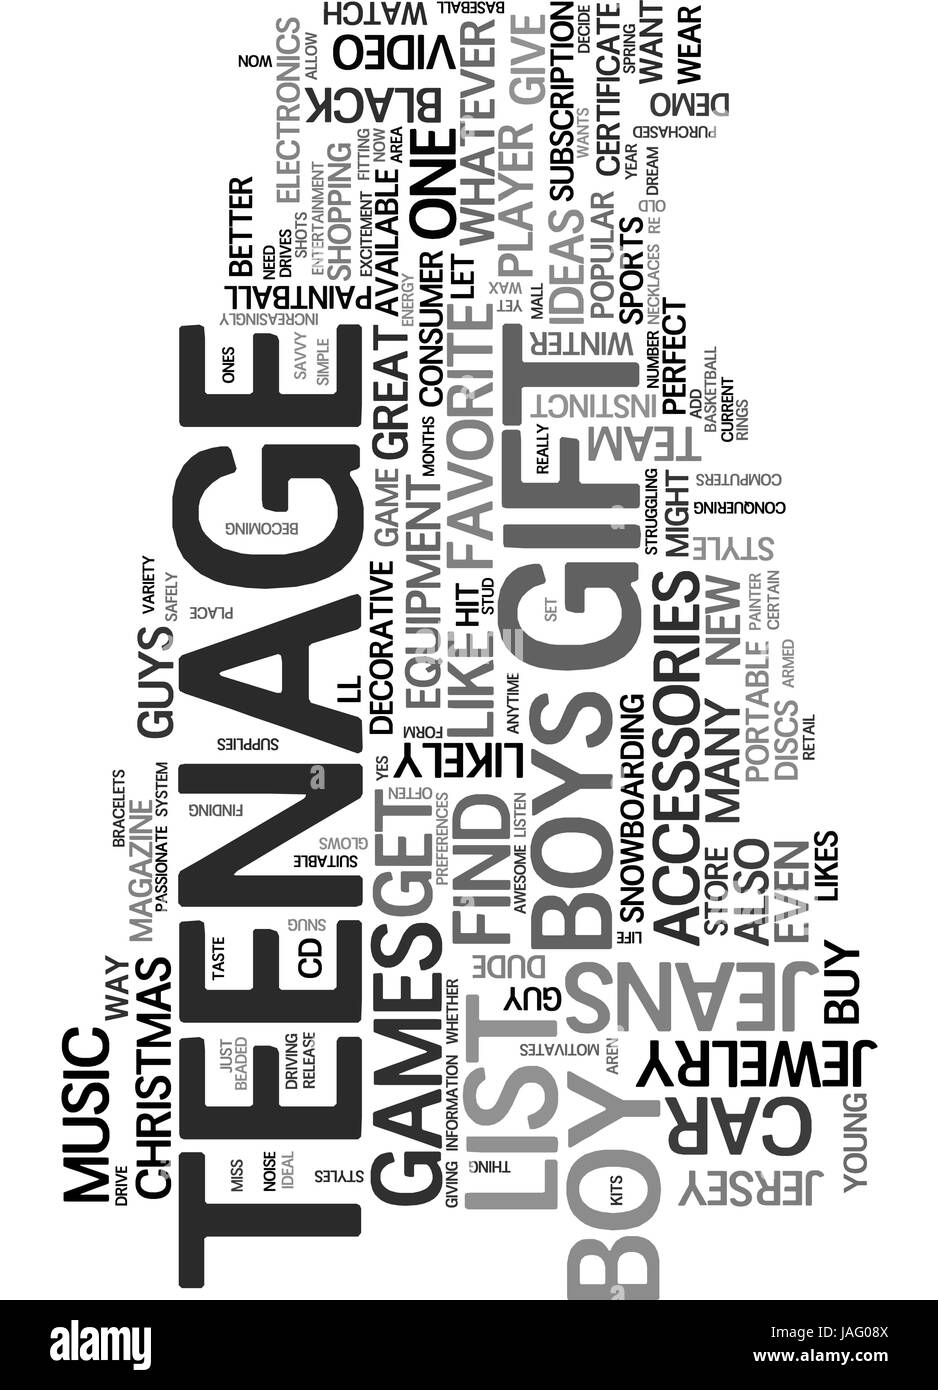 AWESOME GIFT IDEAS FOR THE TEENAGE DUDE TEXT WORD CLOUD CONCEPT Stock Vector